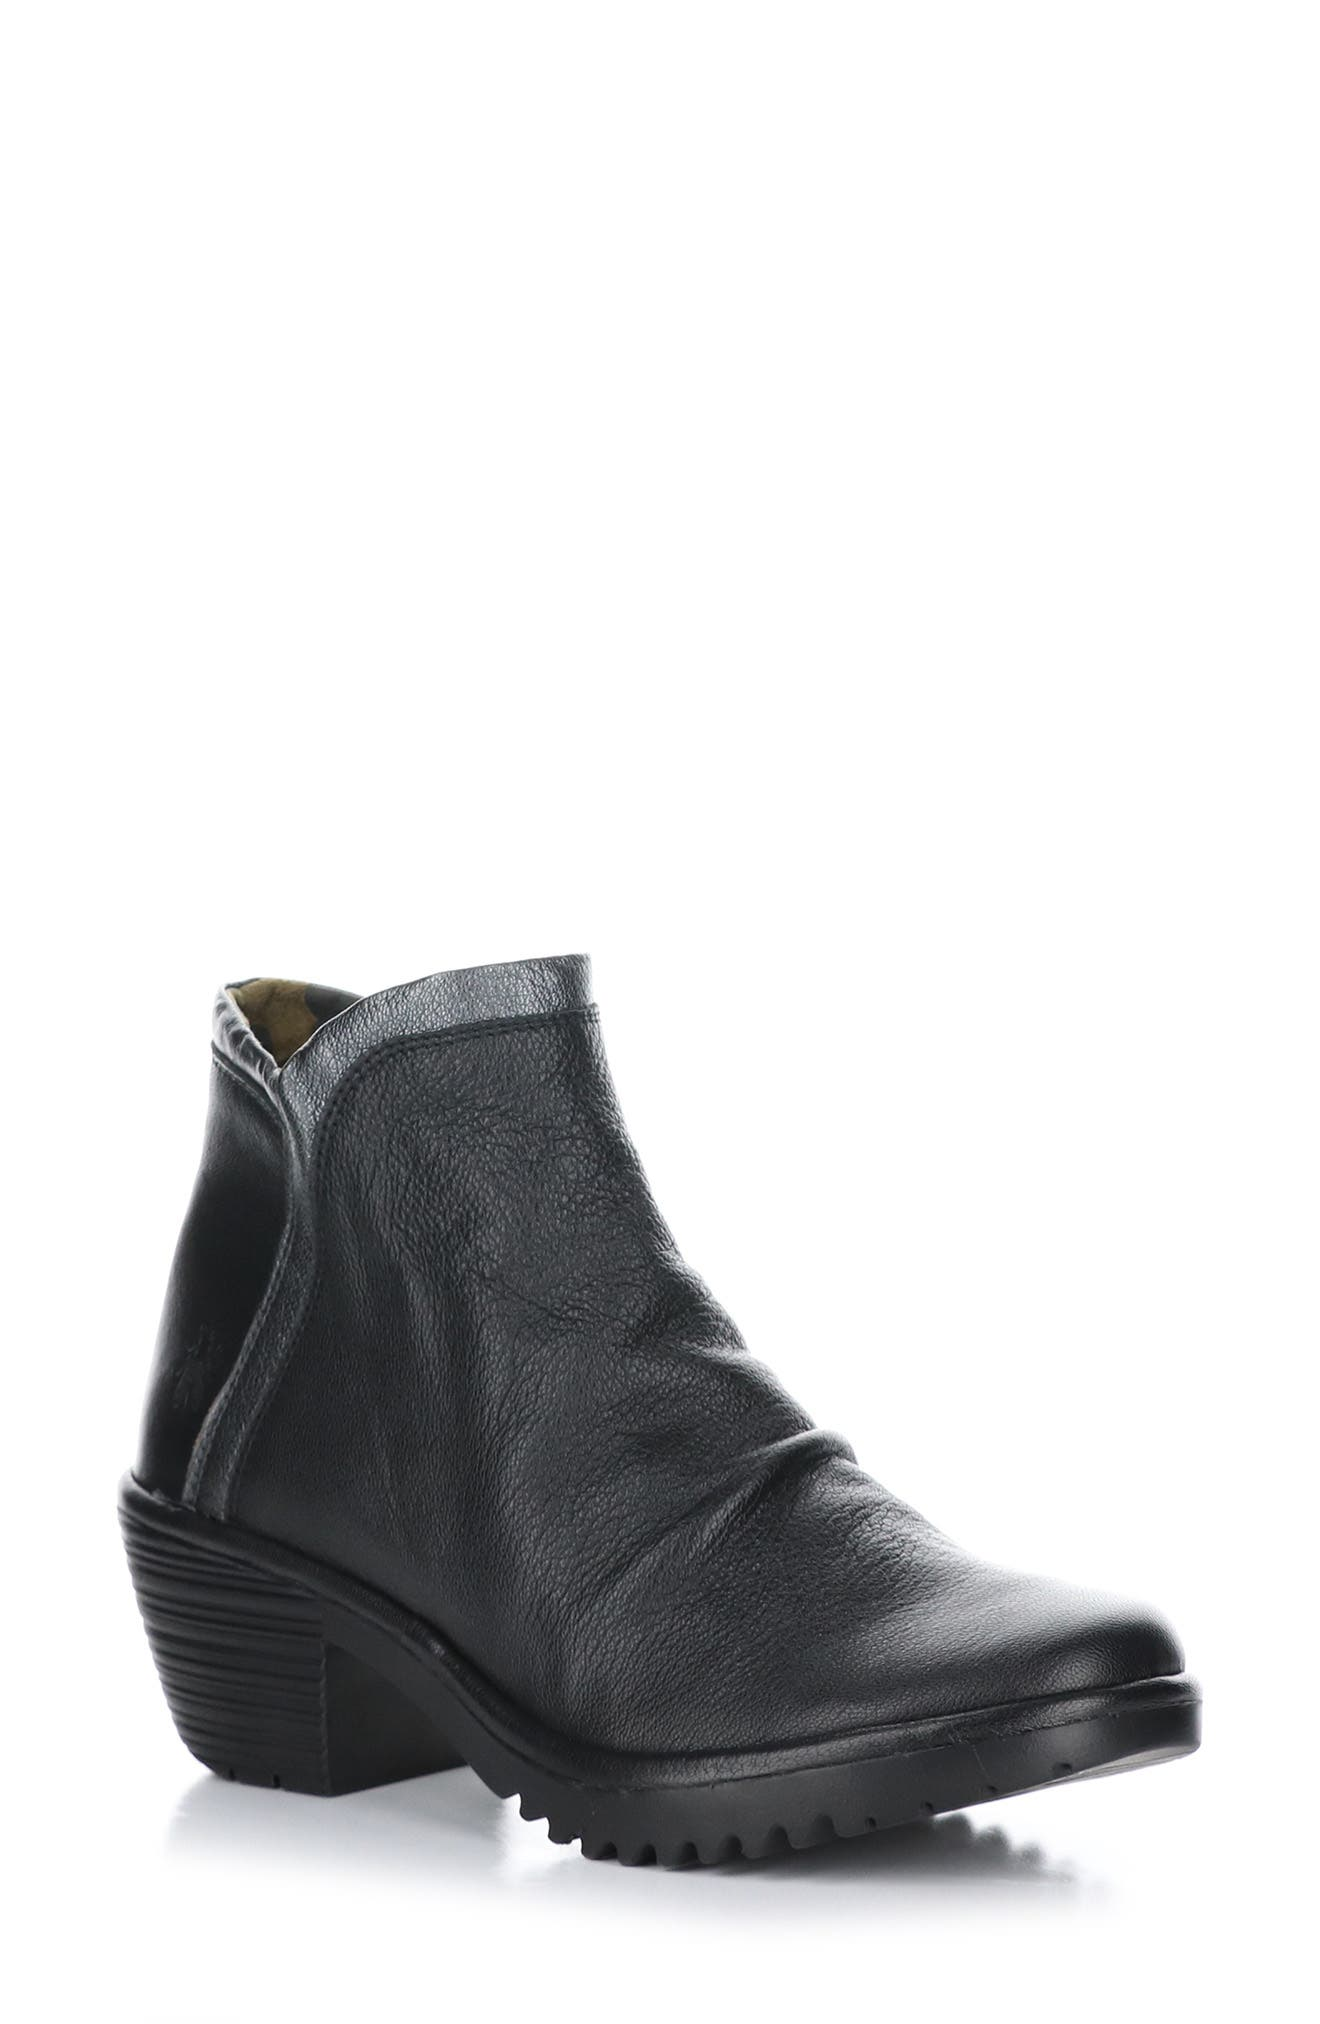 This water-resistant boot with gleaming trim will keep you comfortable with a cushioned insole and breathable leather. Style Name: Fly London Wynn Bootie (Women). Style Number: 6094334. Available in stores.